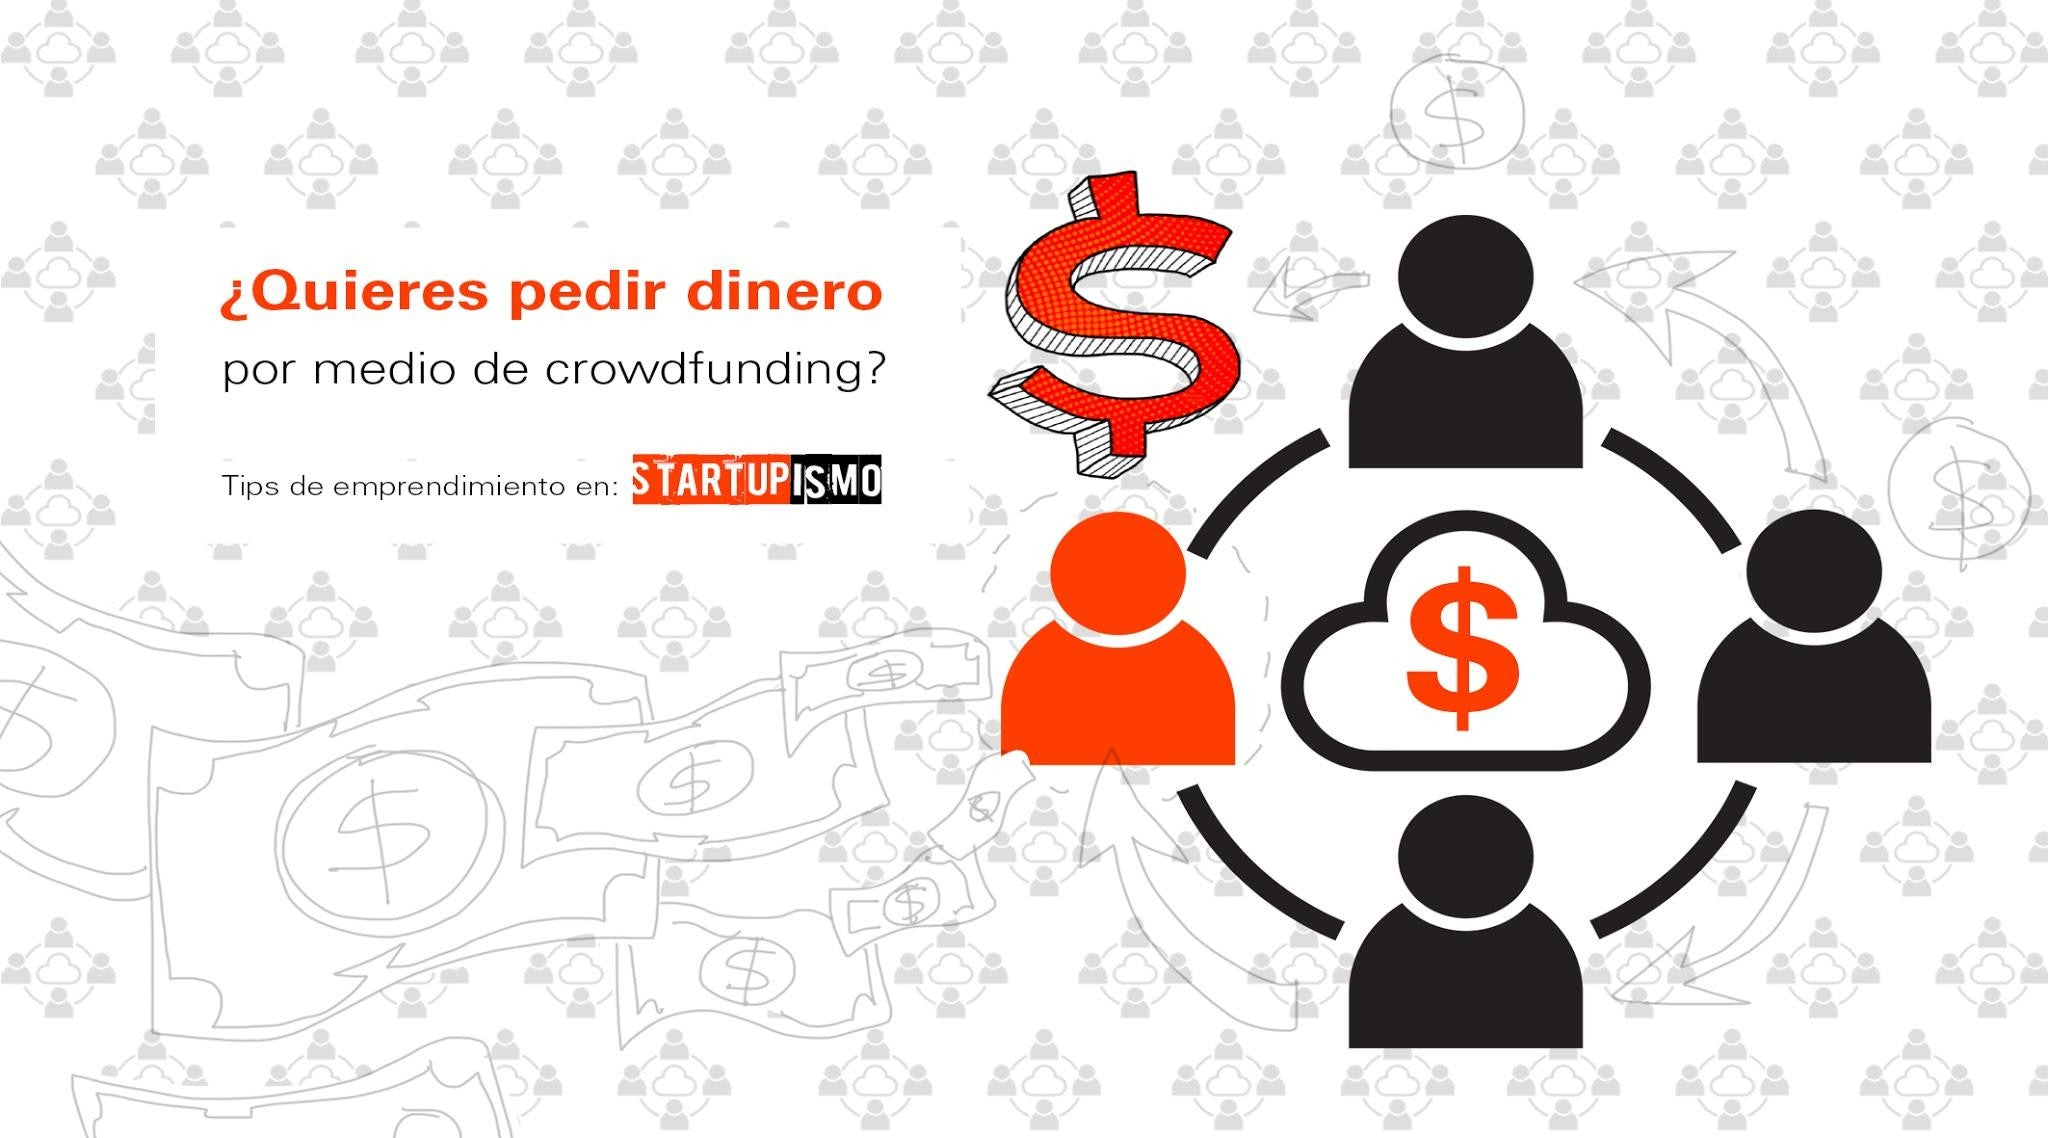 Startupismo Paso 13: Crowdfunding, Crowdquity y Crowdsourcing